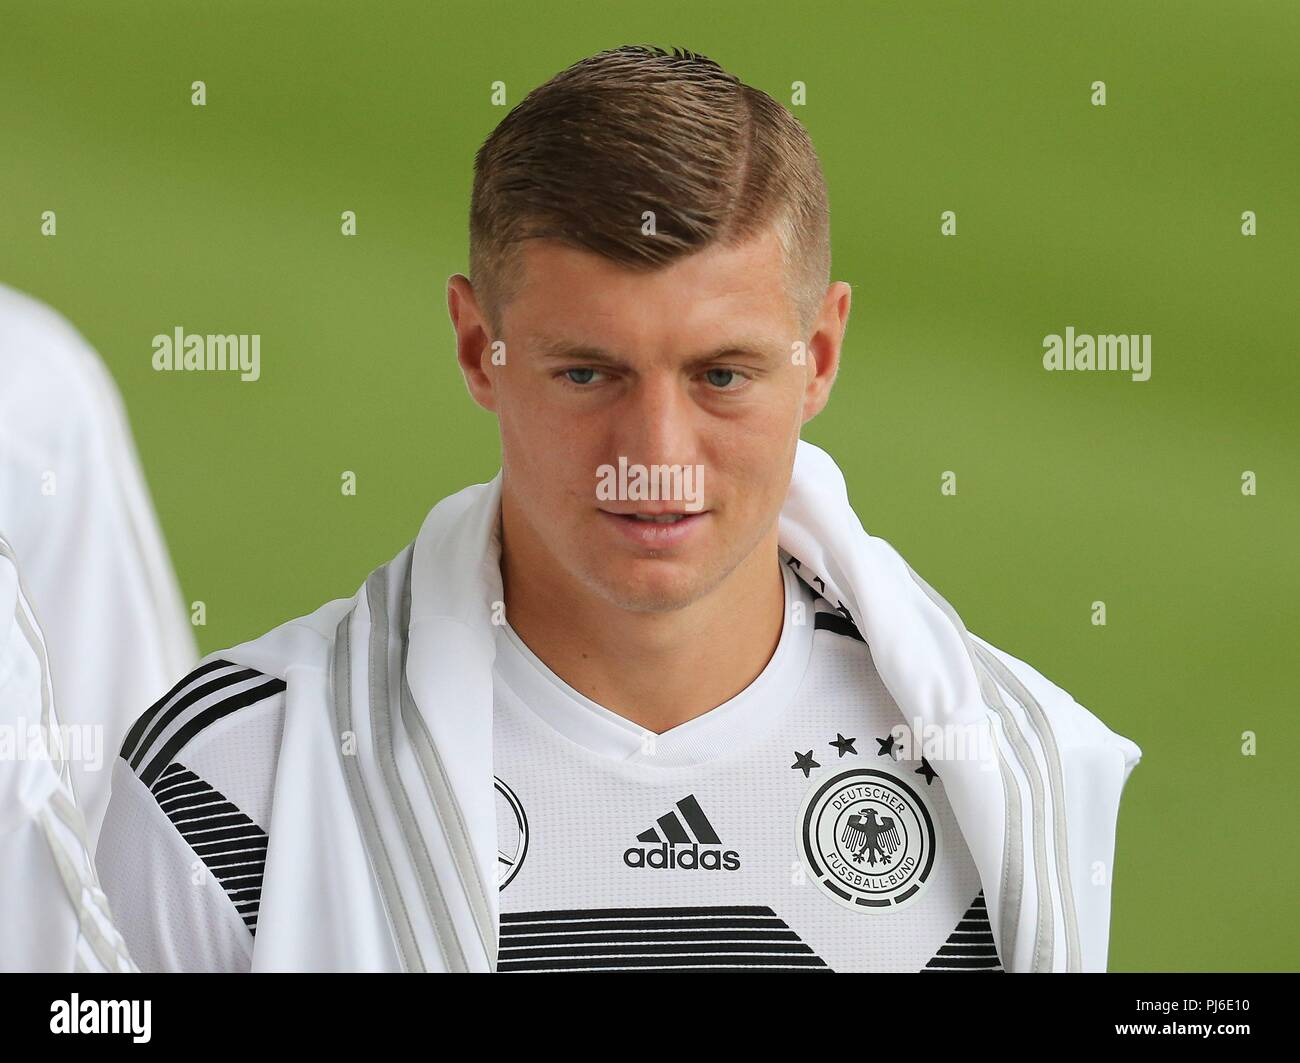 firo: 04.09.2018, Fuvuball, football, national team, training, Toni Kroes, DFB, half figure, Germany | usage worldwide - Stock Image